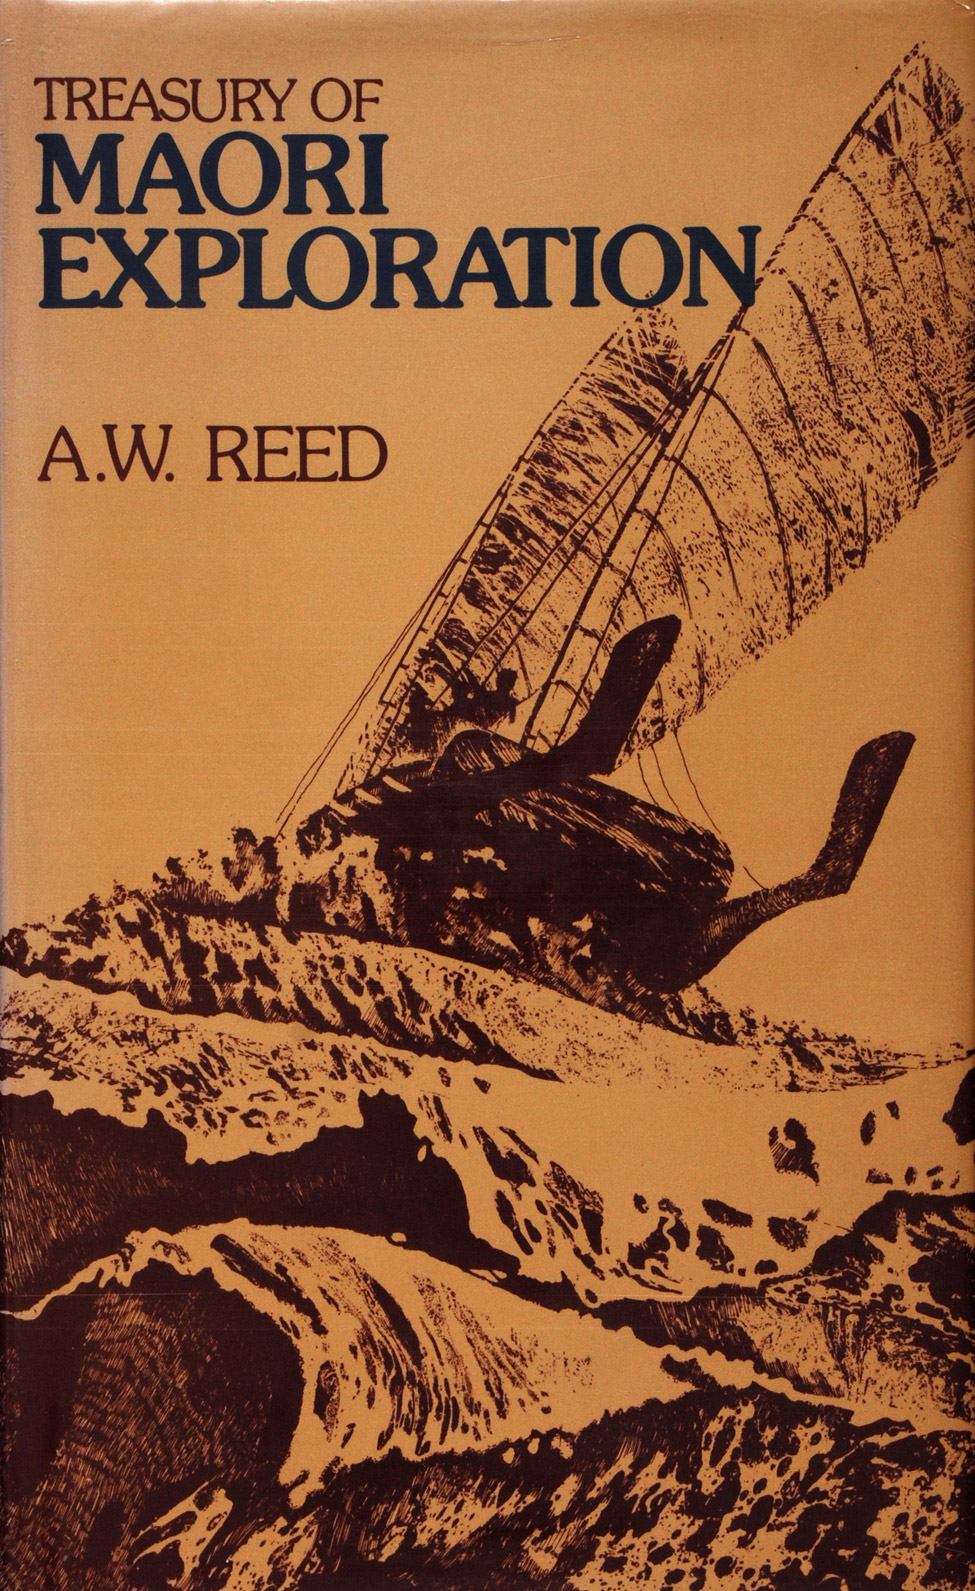 A. W. Reed. <i>Treasury of Maori Exploration: Legends Relating to the First Polynesian Explorers of New Zealand. </i> Wellington: A. H. & A. W. Reed, 1977.